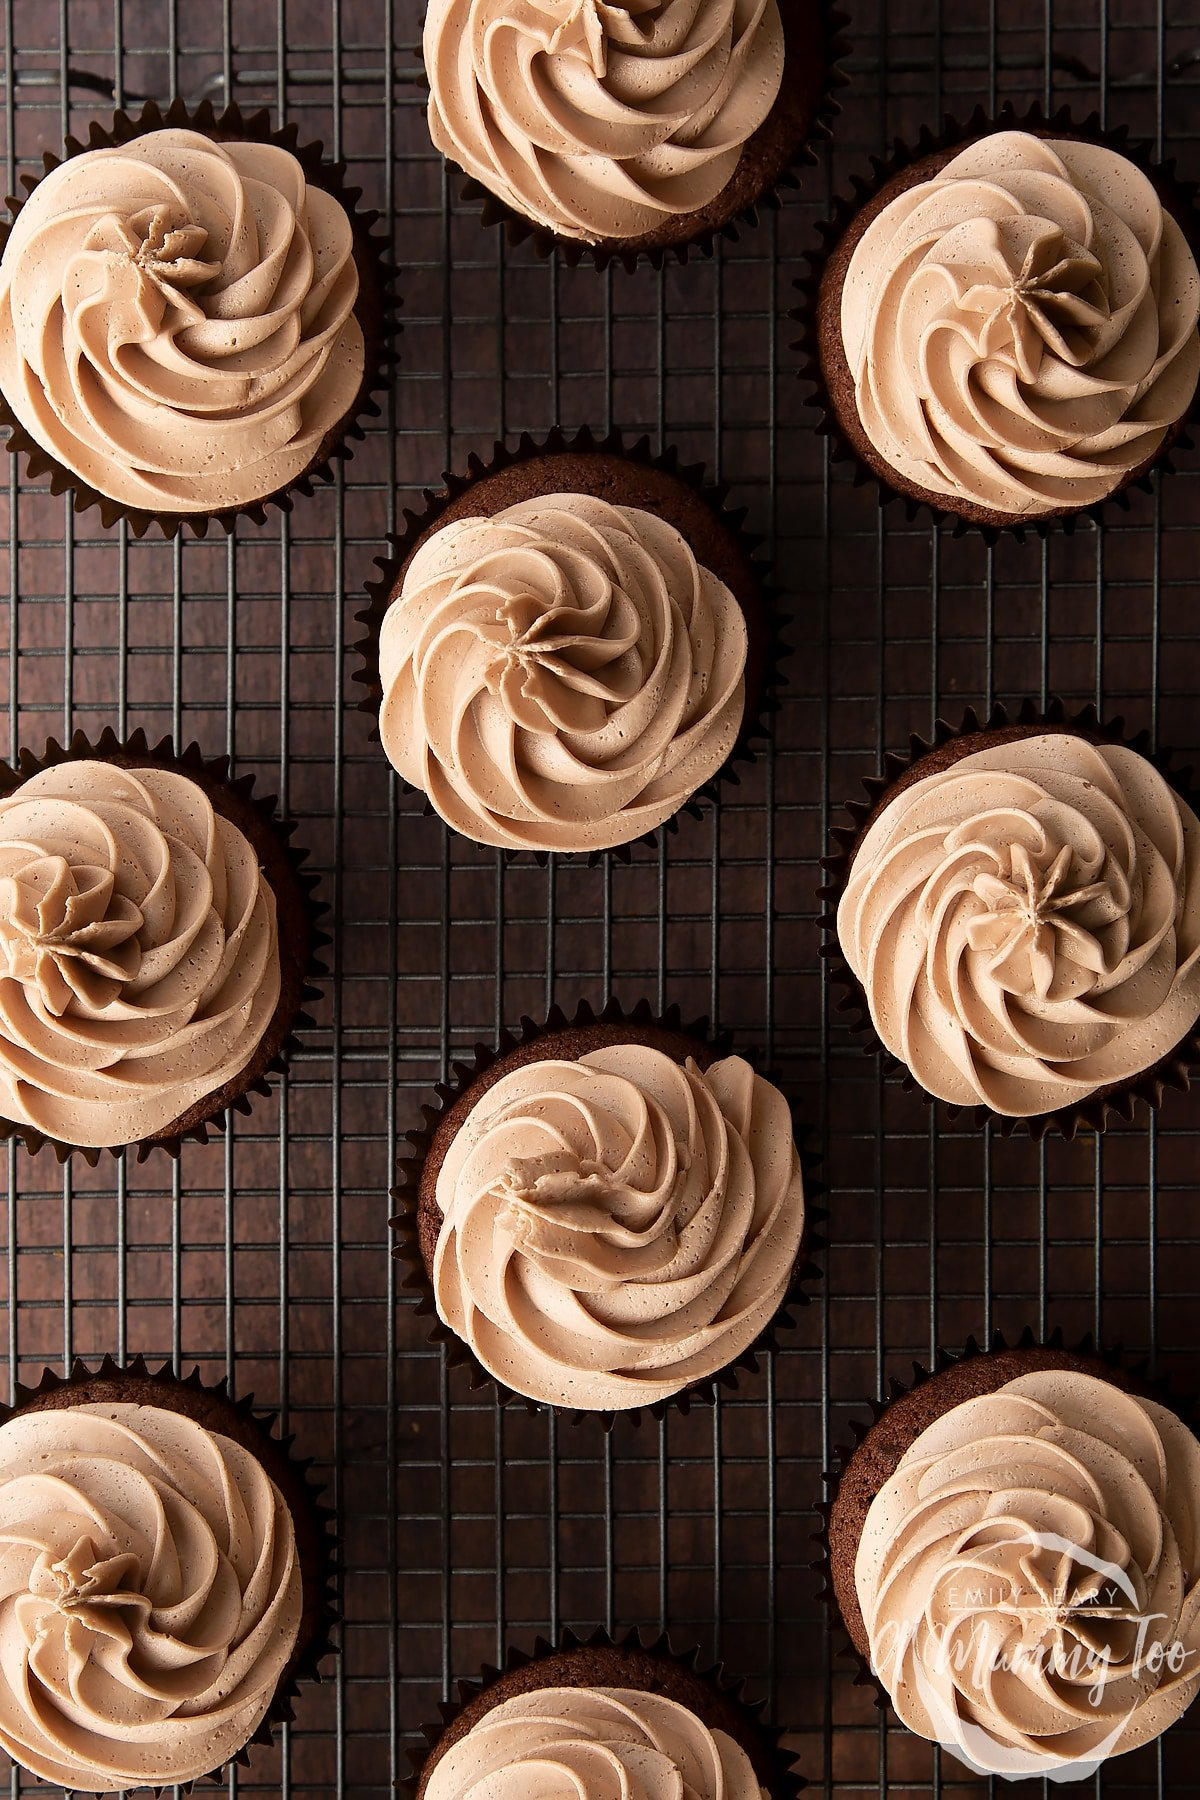 Baileys chocolate cupcakes topped with Baileys icing. Shown from above on a wire cooling rack.